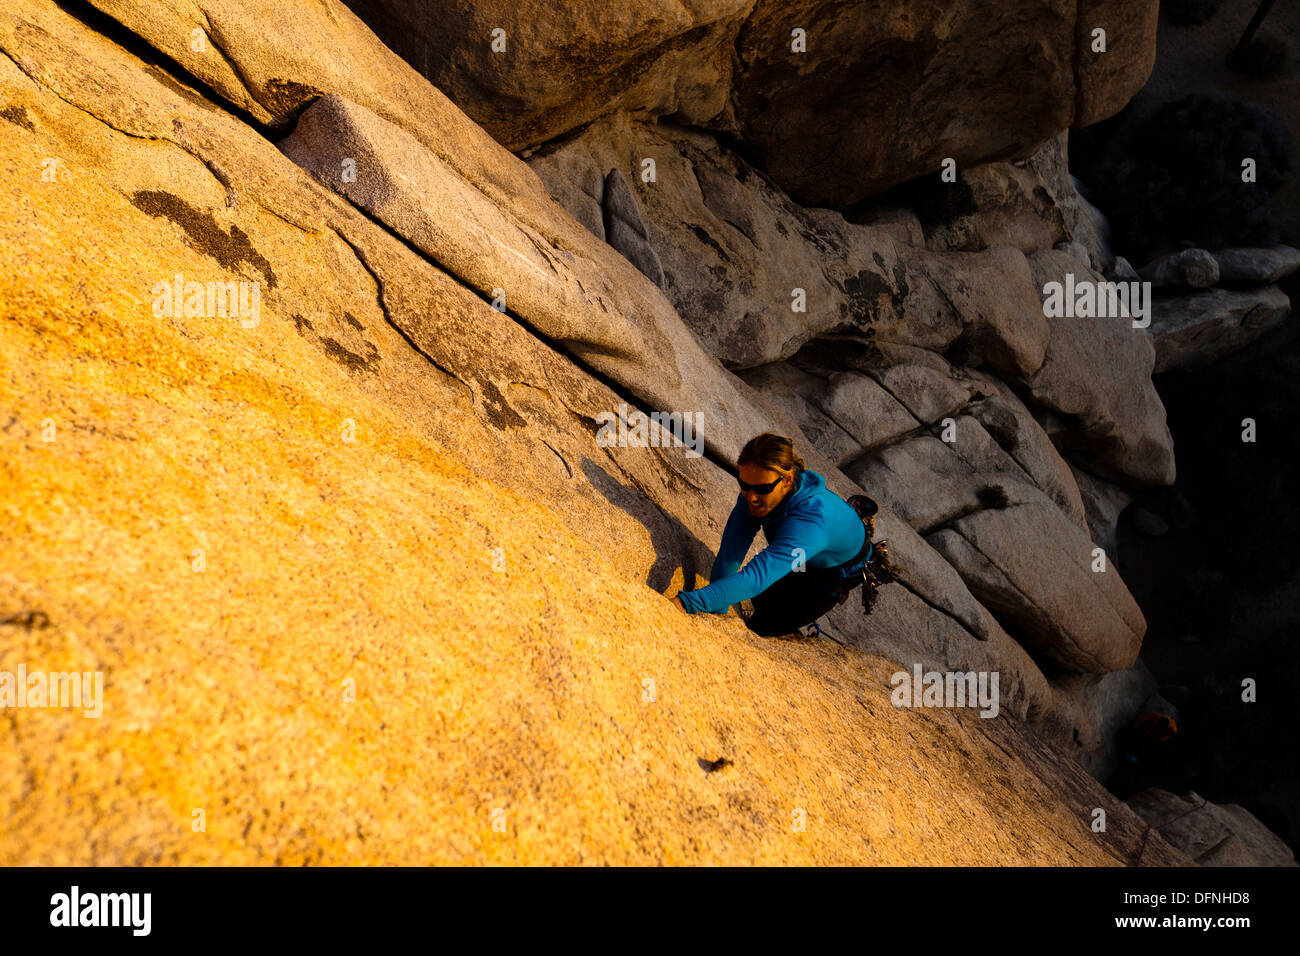 A male climber hand jams his way up The Flake (5.8+) in Joshua Tree National Park, California. - Stock Image